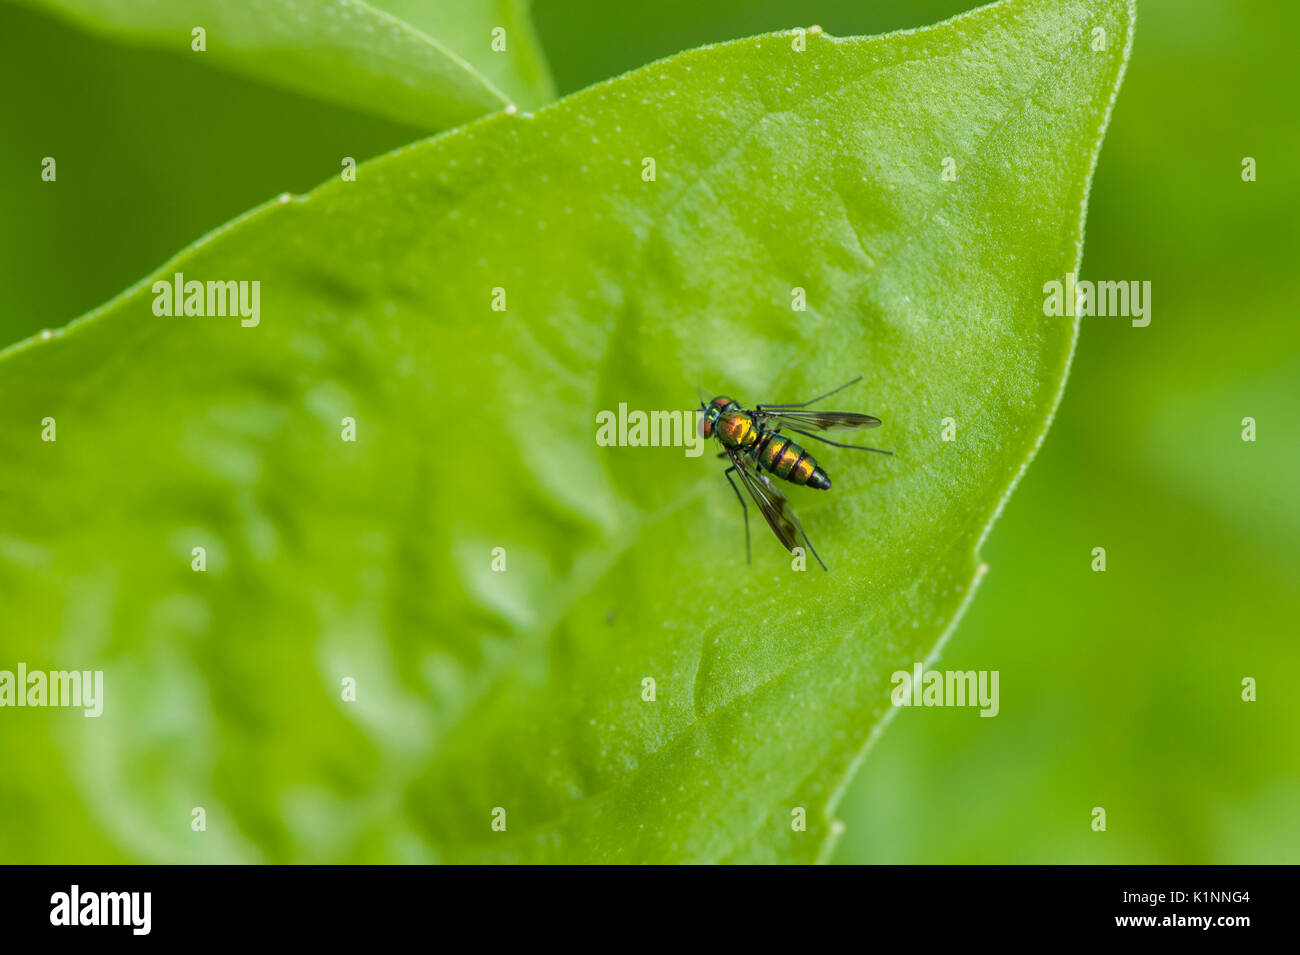 A metallic green sweat bee rests on a basil leaf. - Stock Image